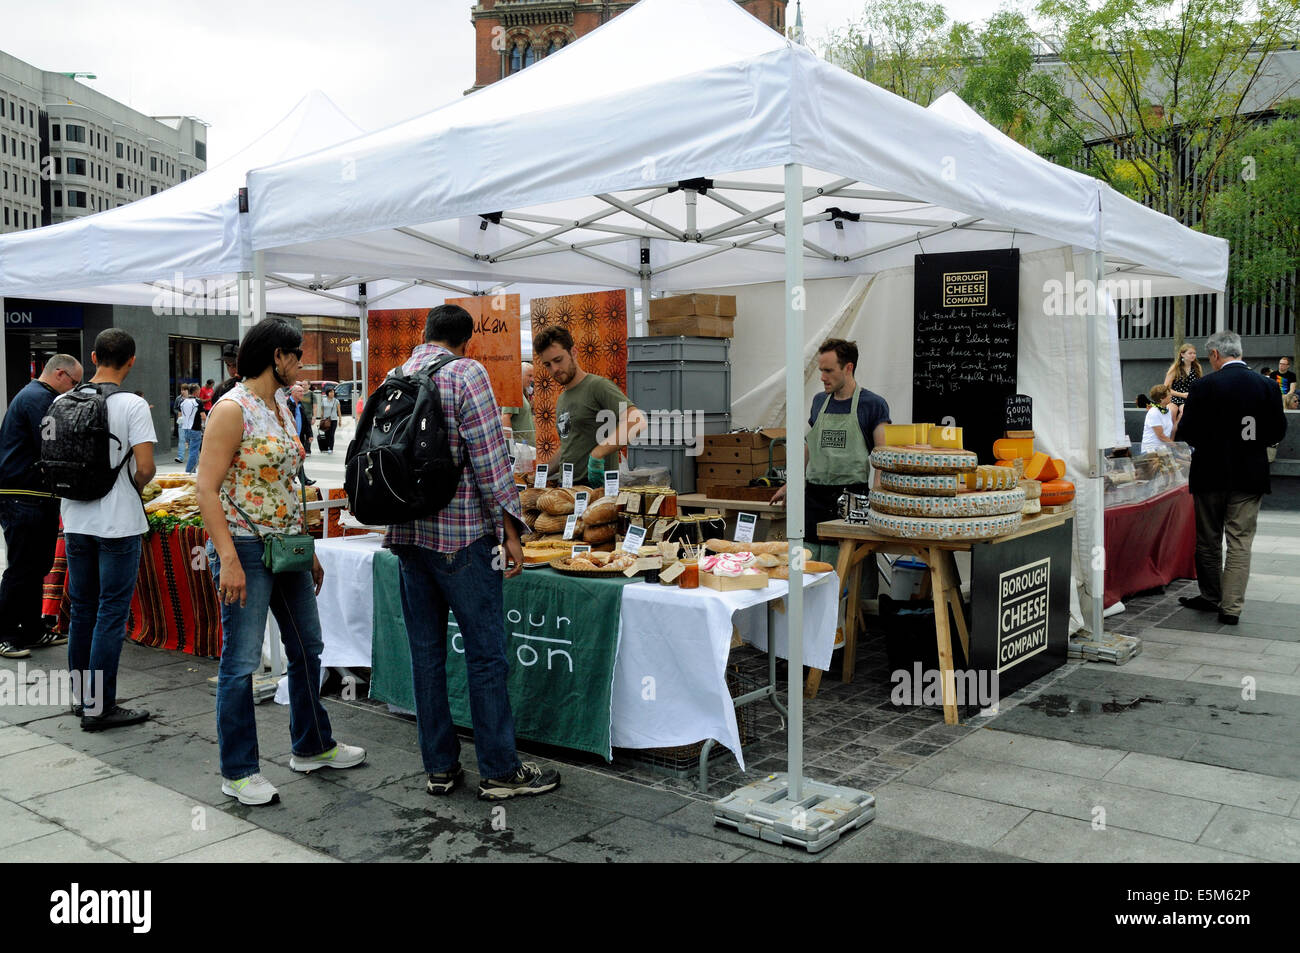 People at the Flour Station stall, Kings Cross Real Food Produce Market, Kings Cross Station Square, London England - Stock Image